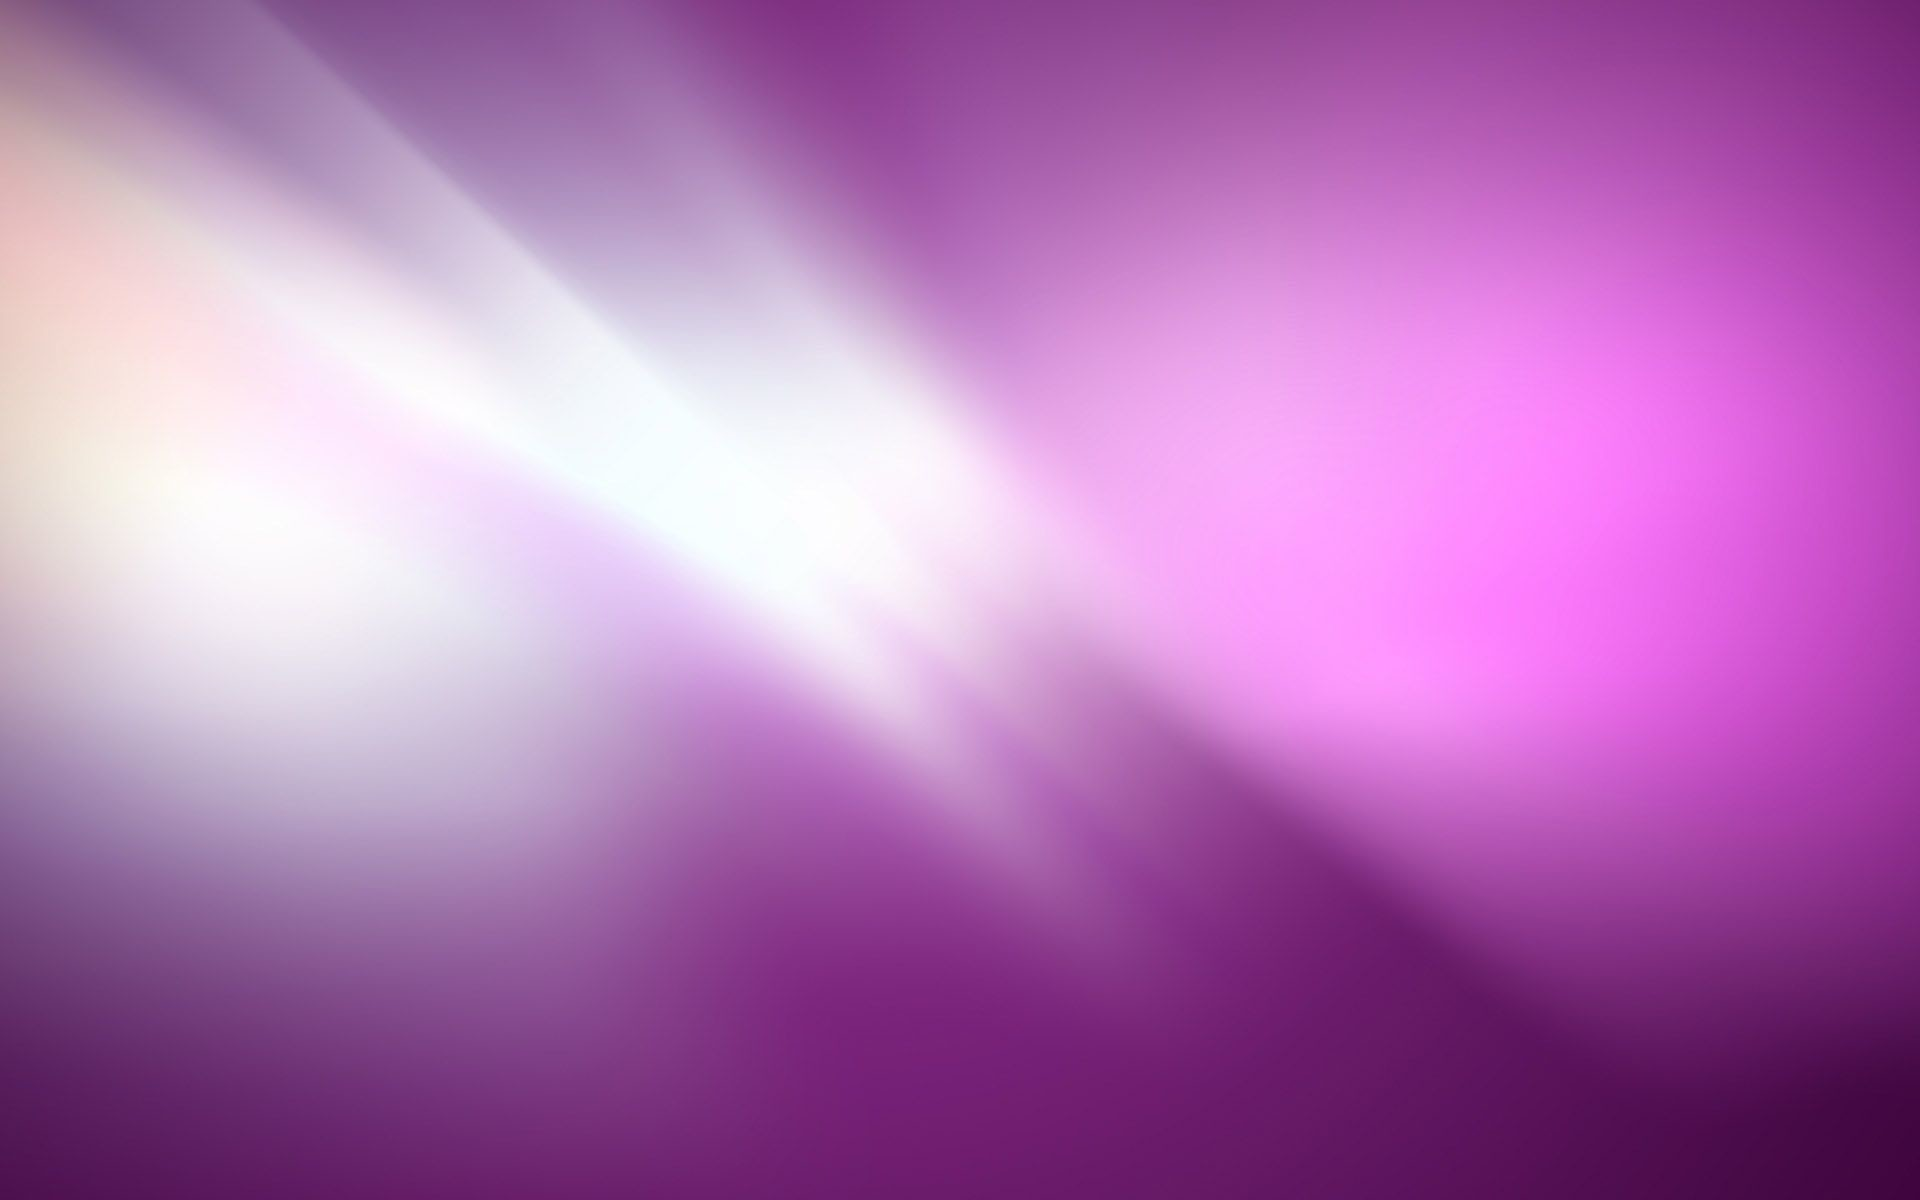 background purple ground abstract - photo #44